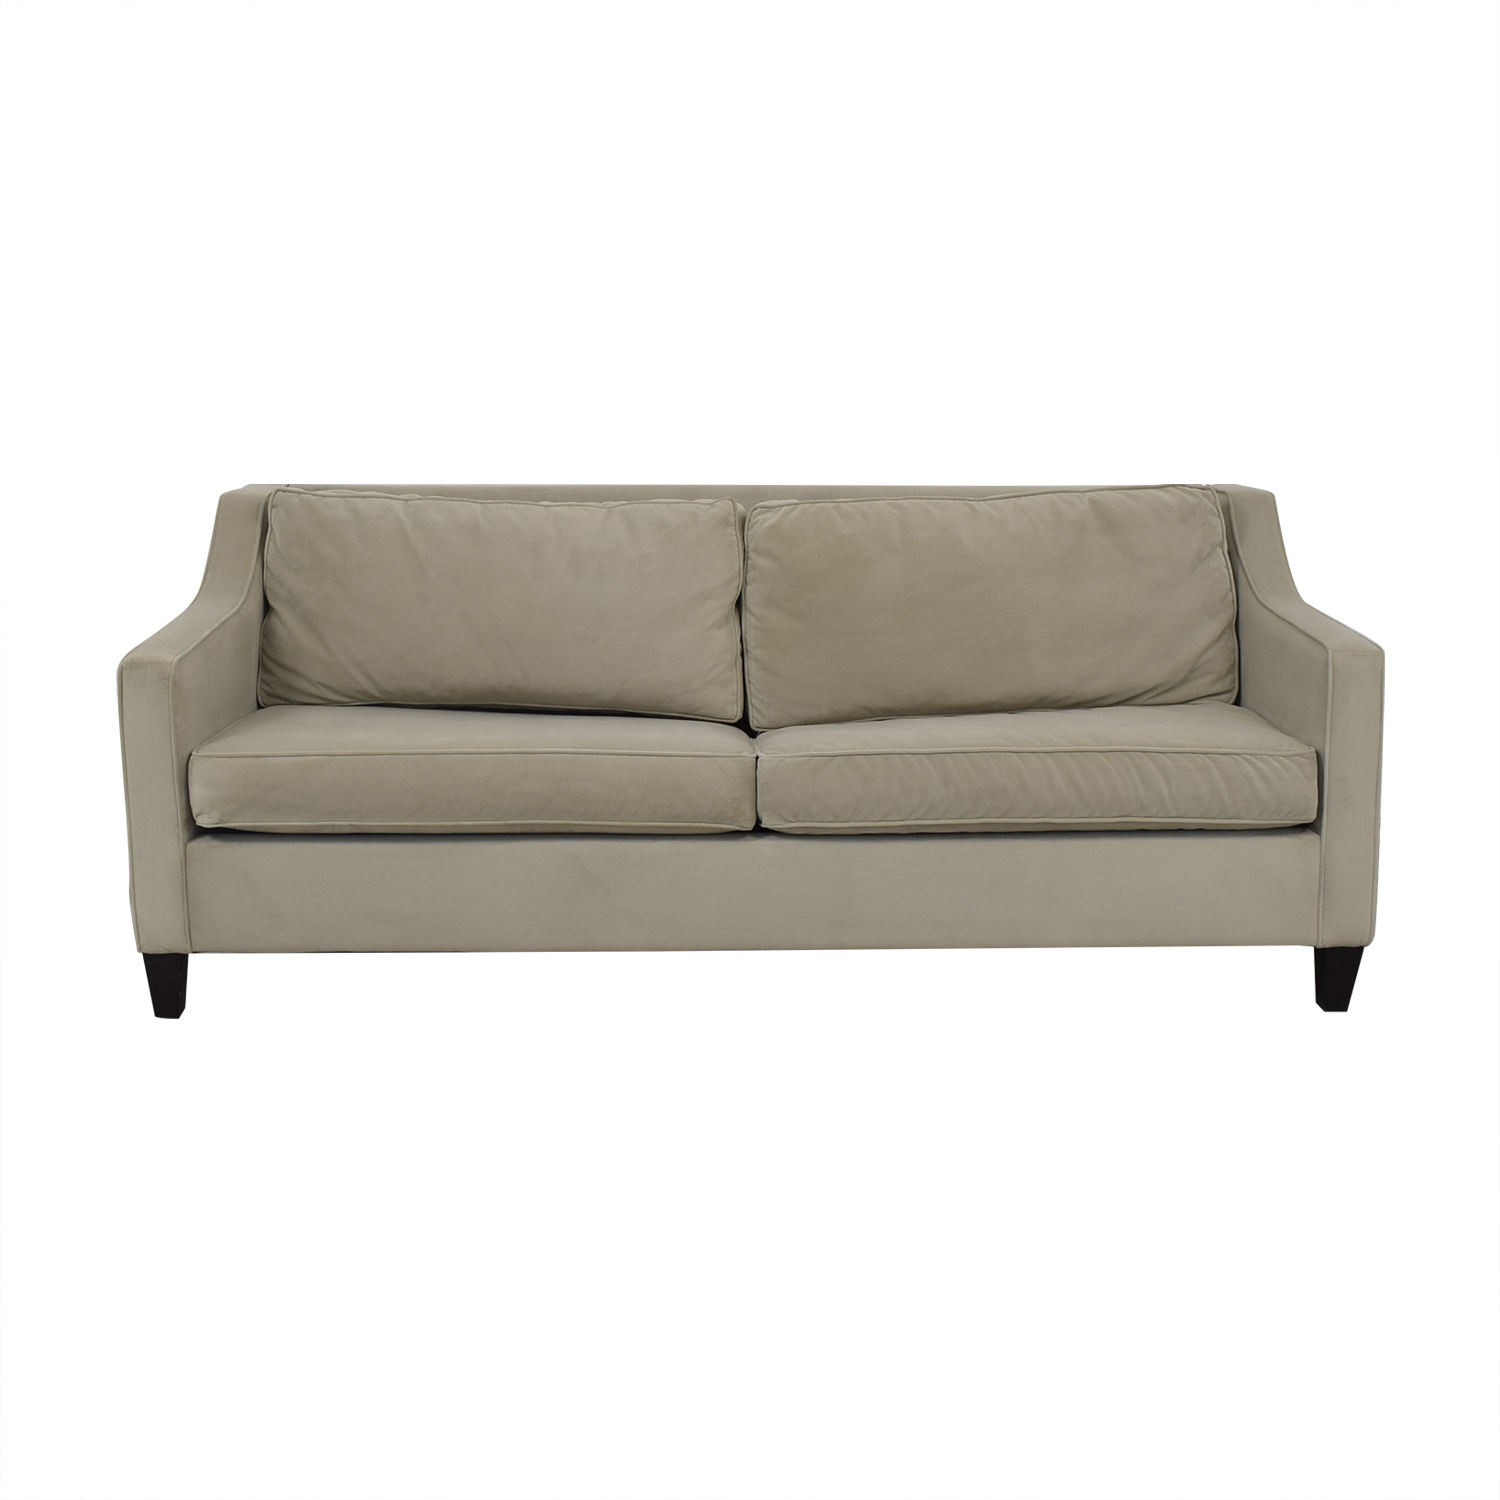 West Elm West Elm Henry Deluxe Queen Sleeper Sofa on sale